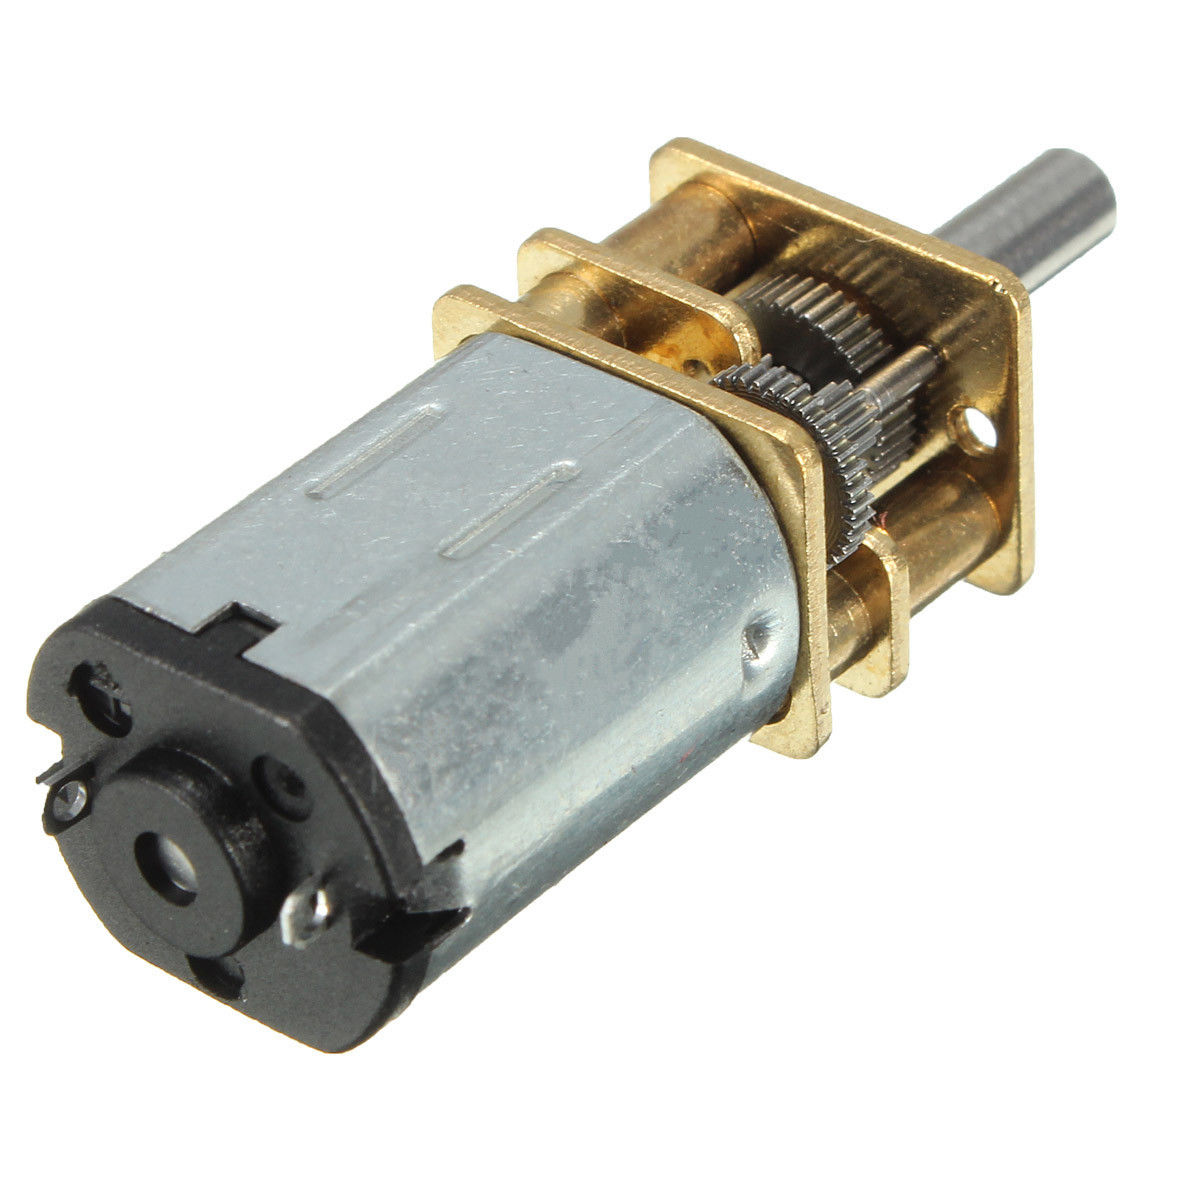 Dc 6v 100rpm mini metal gear motor with gearwheel 3mm Miniature gear motors